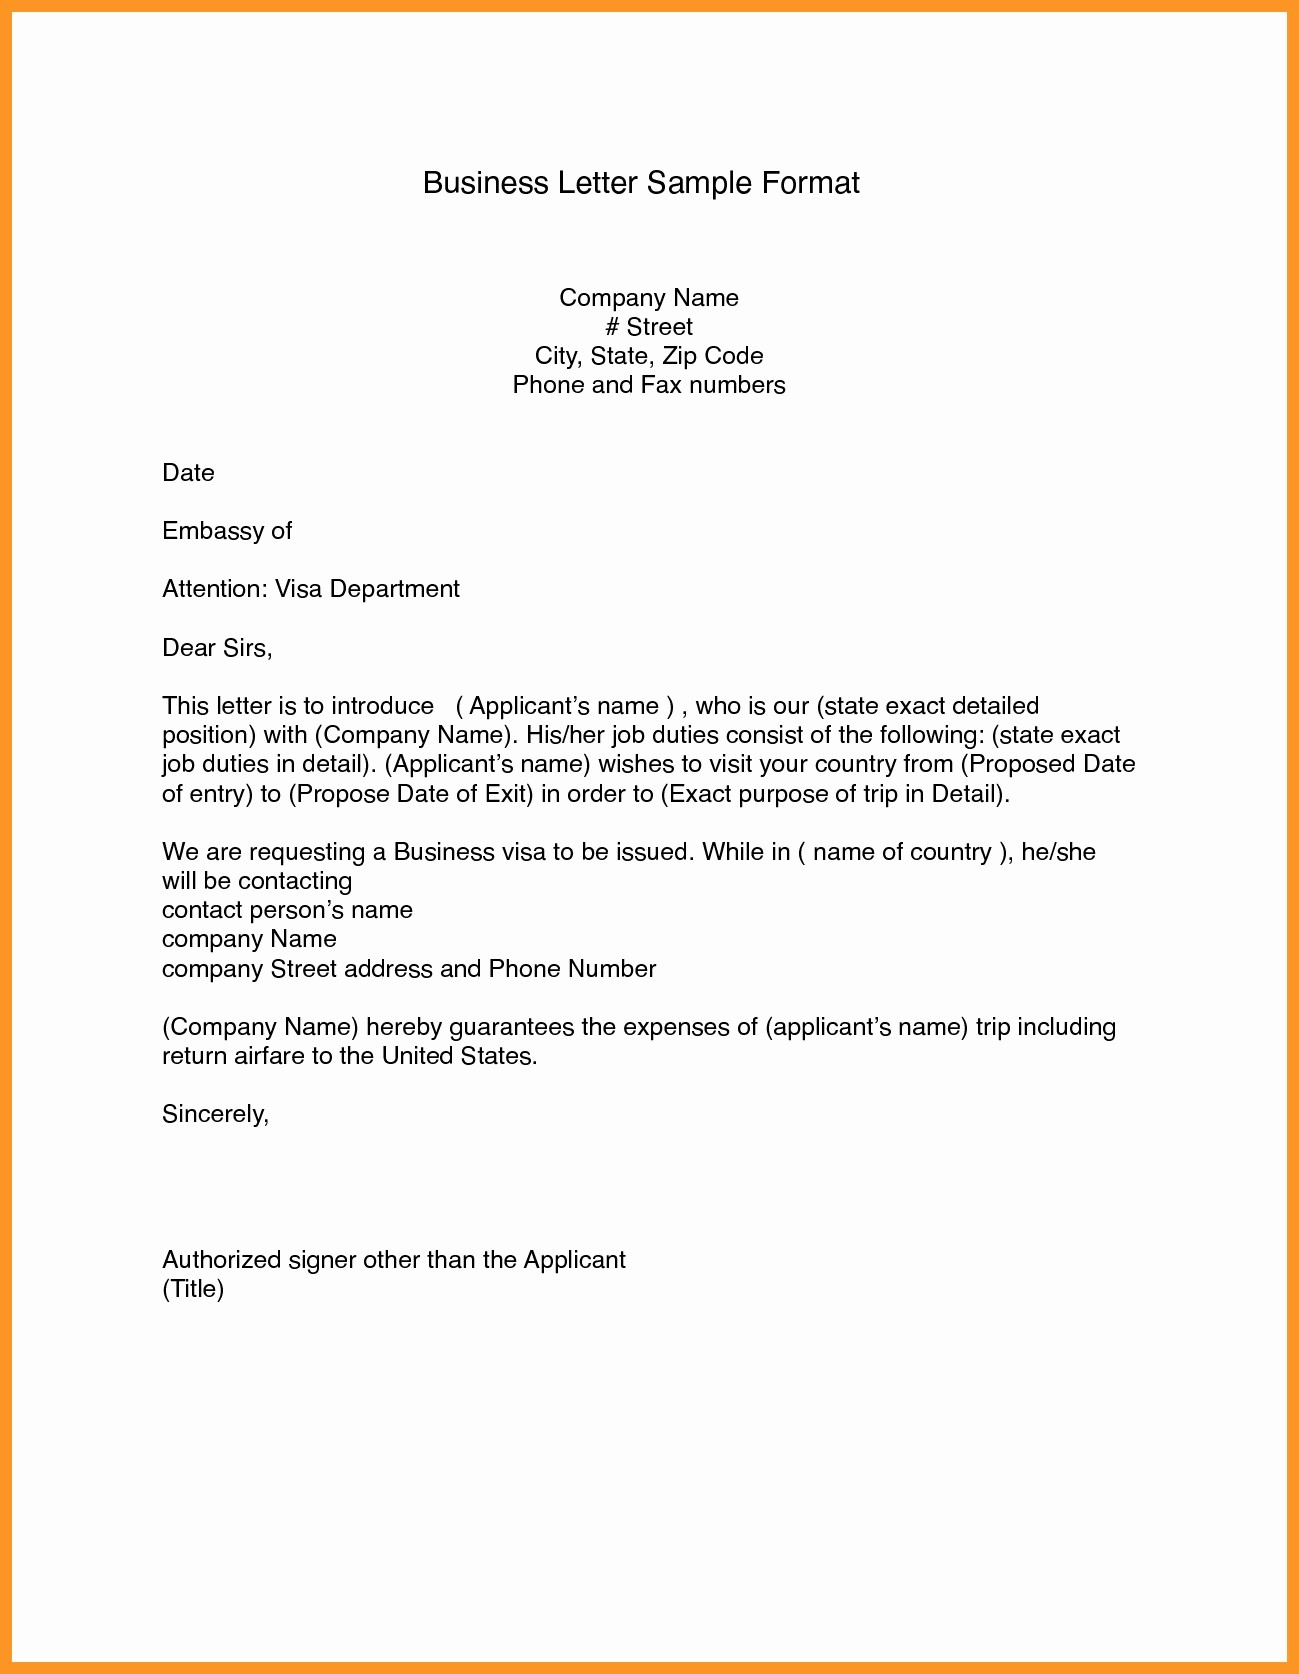 Microsoft Word Business Letter Templates Beautiful Business Letter format Template Word